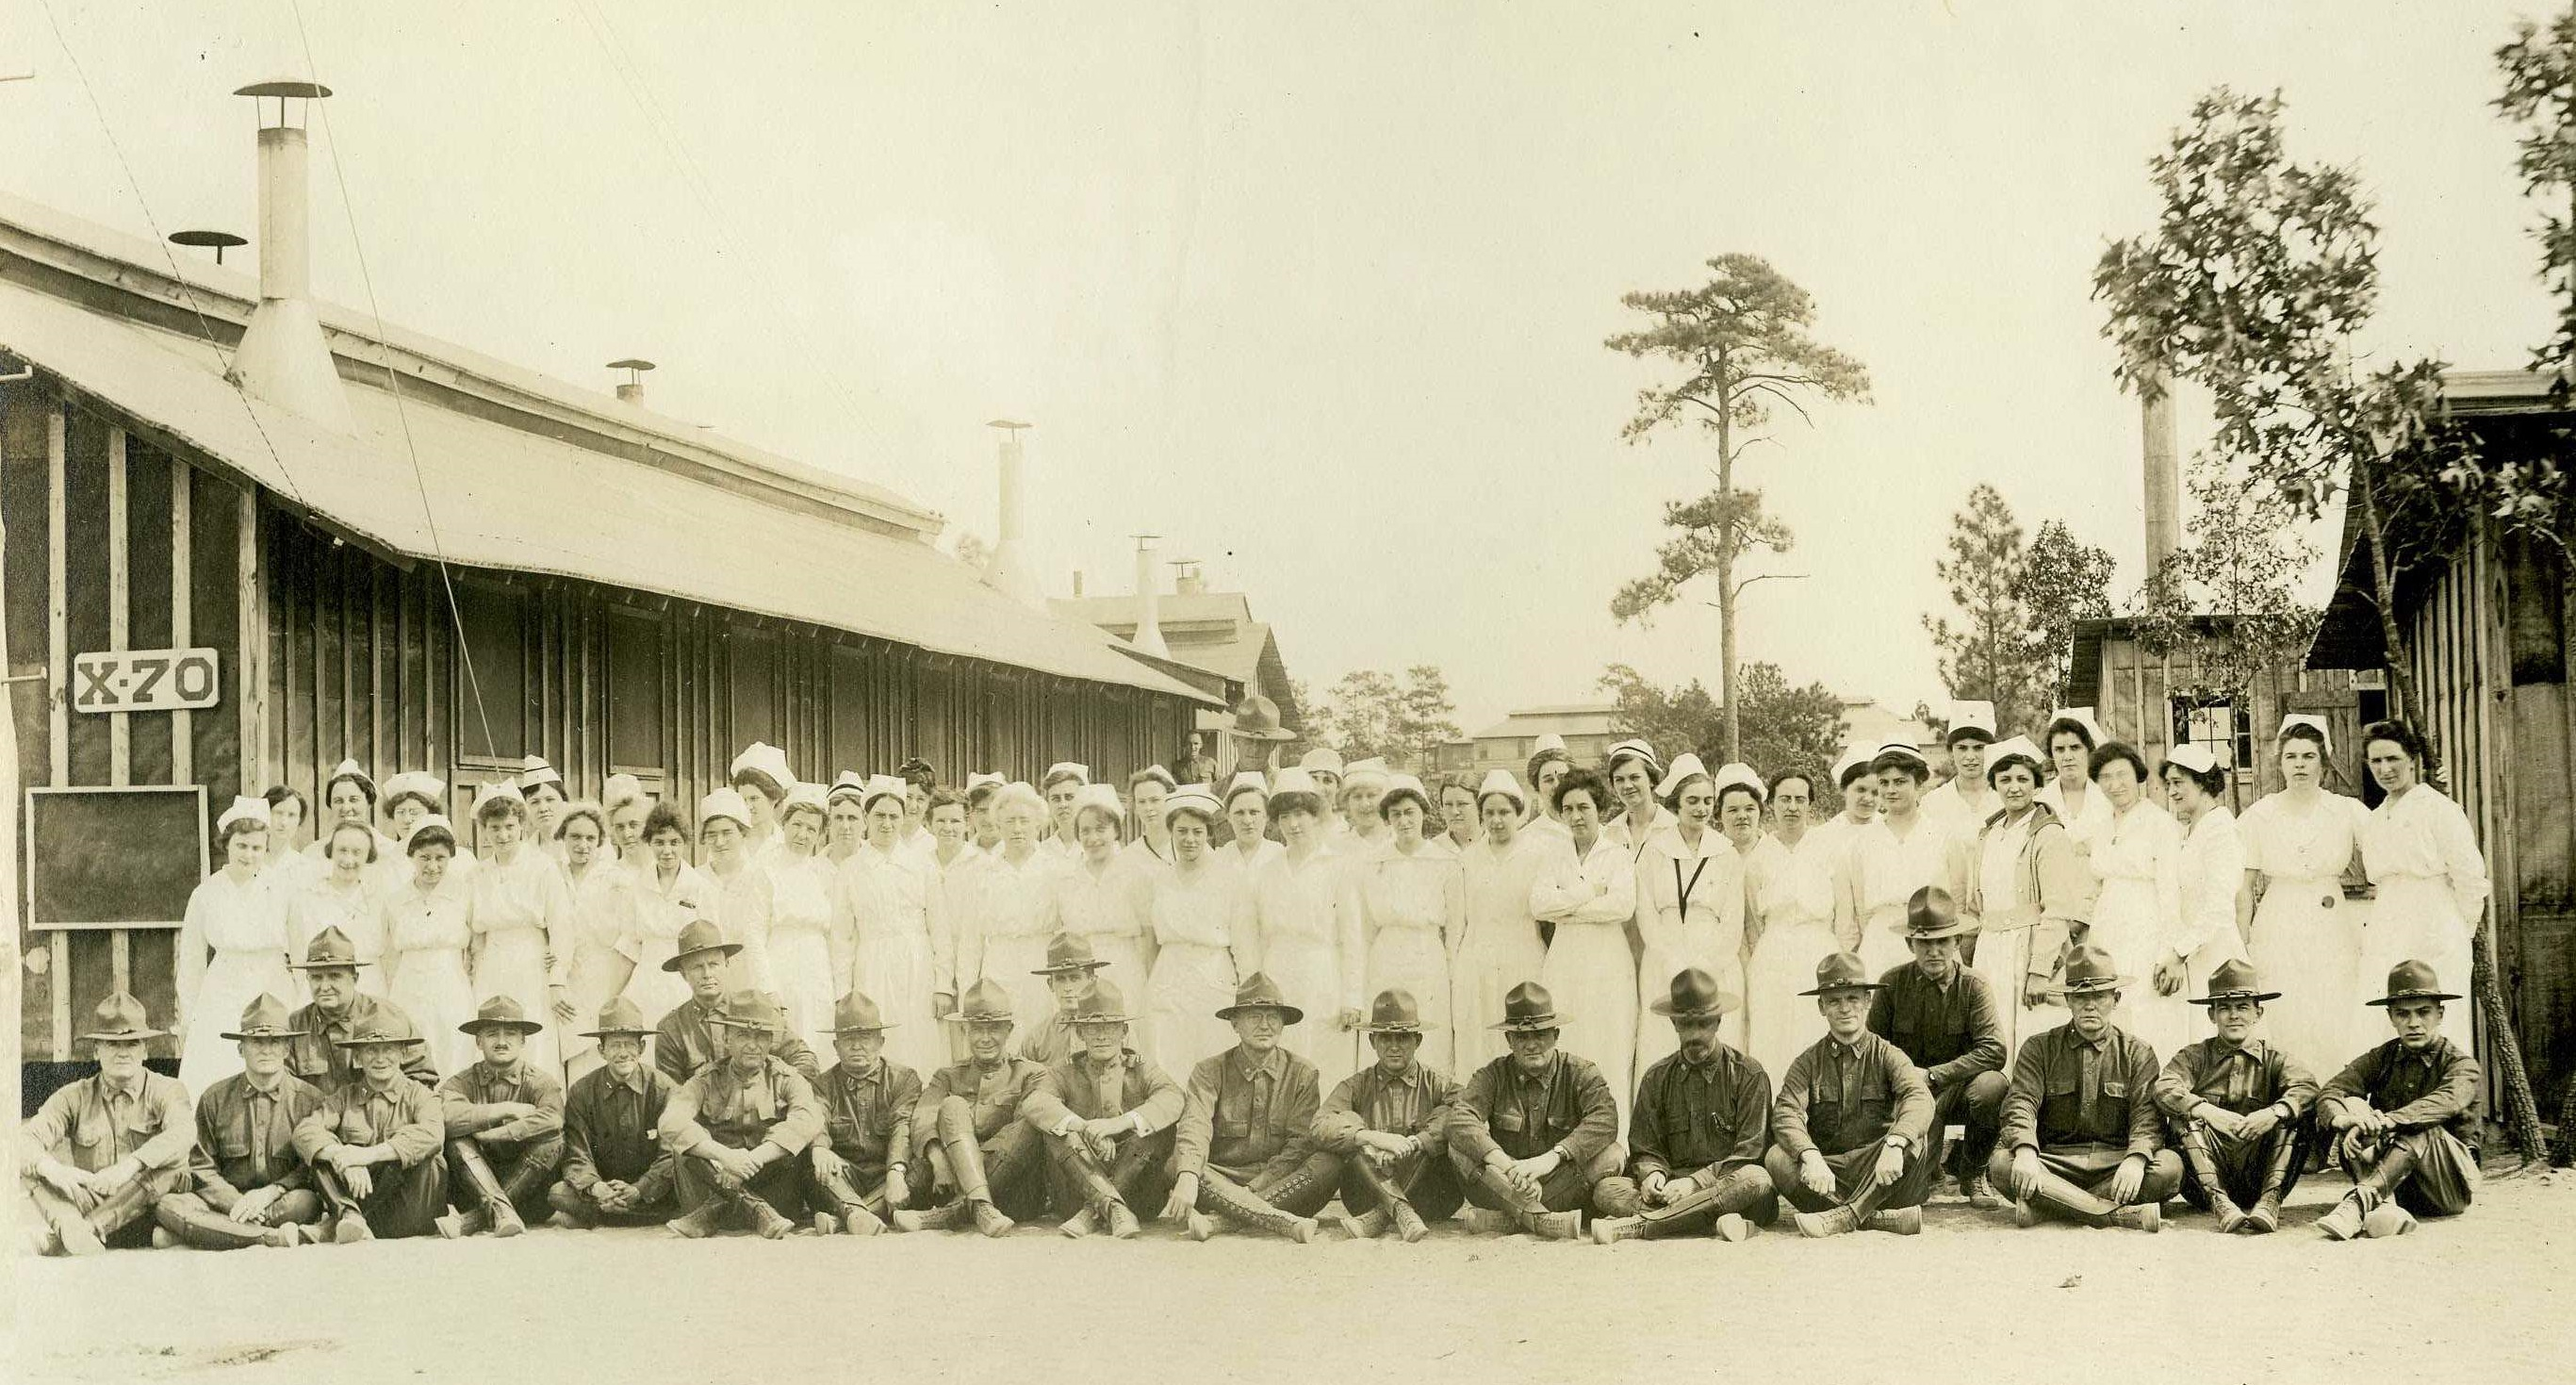 Females nurses standing in back row, male medical officers seated in front row, outside at Camp Jackson Base Hospital.